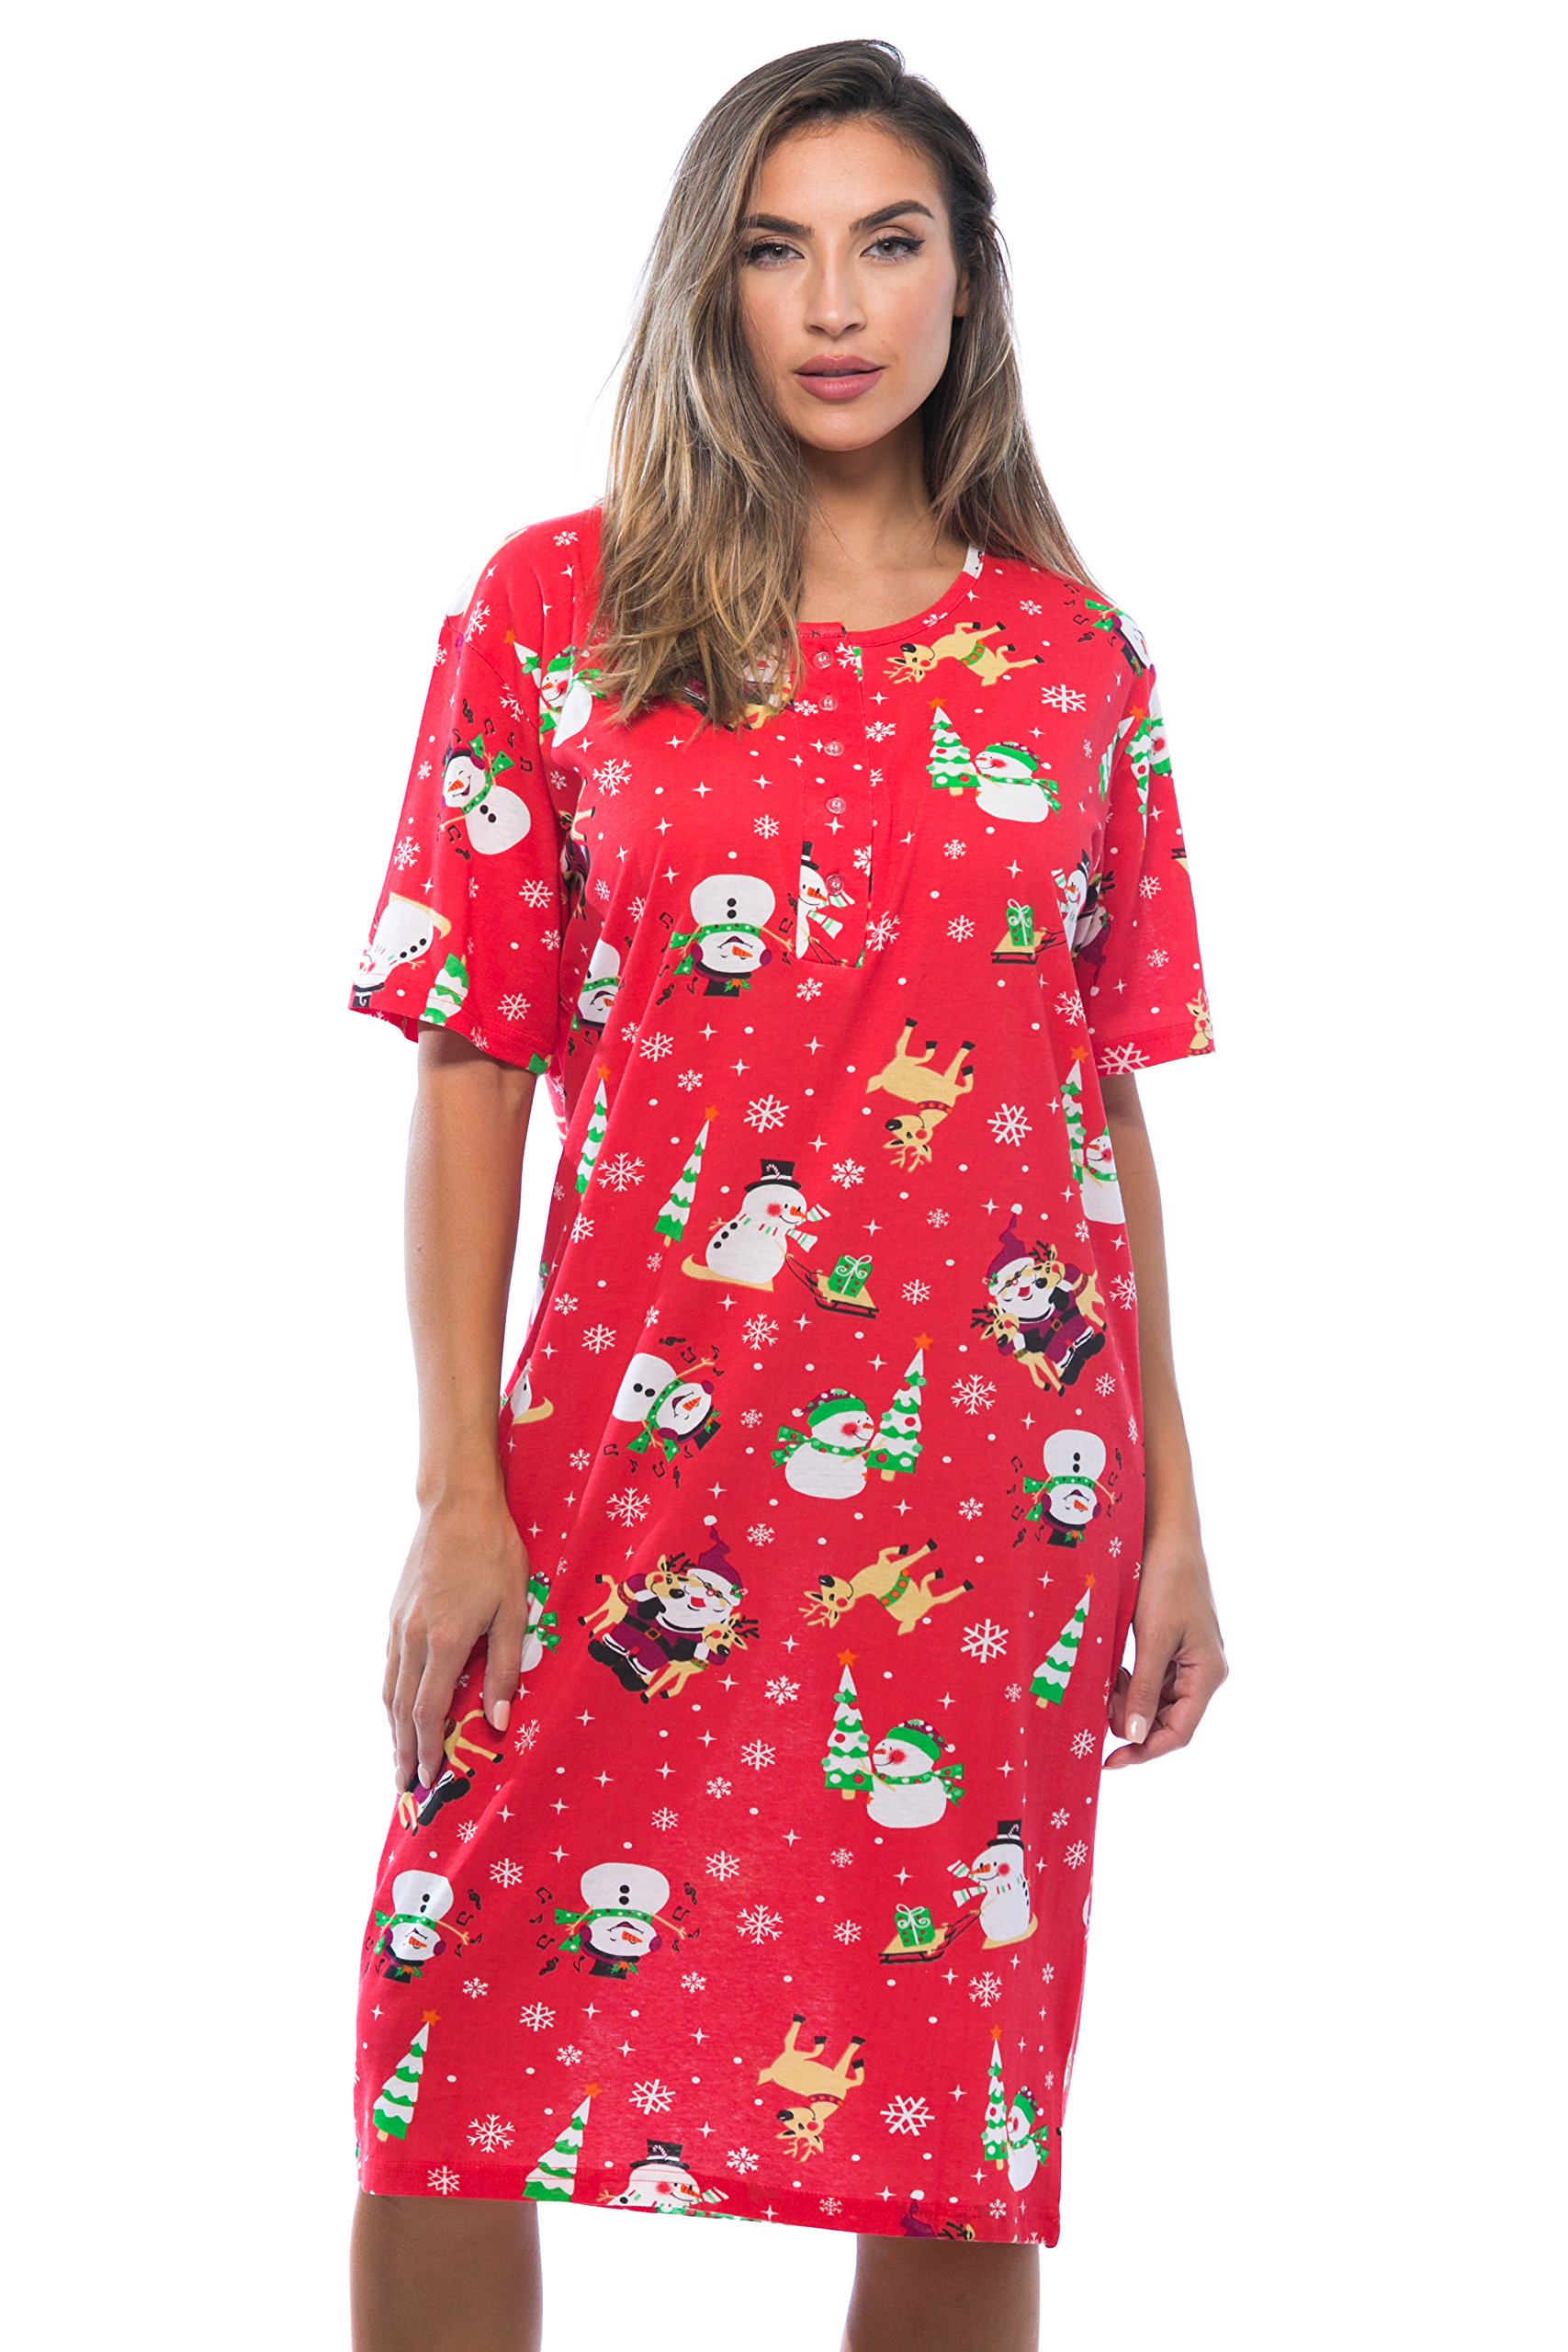 Image of Cute Short Christmas Print Nightgowns for Women - See More Prints